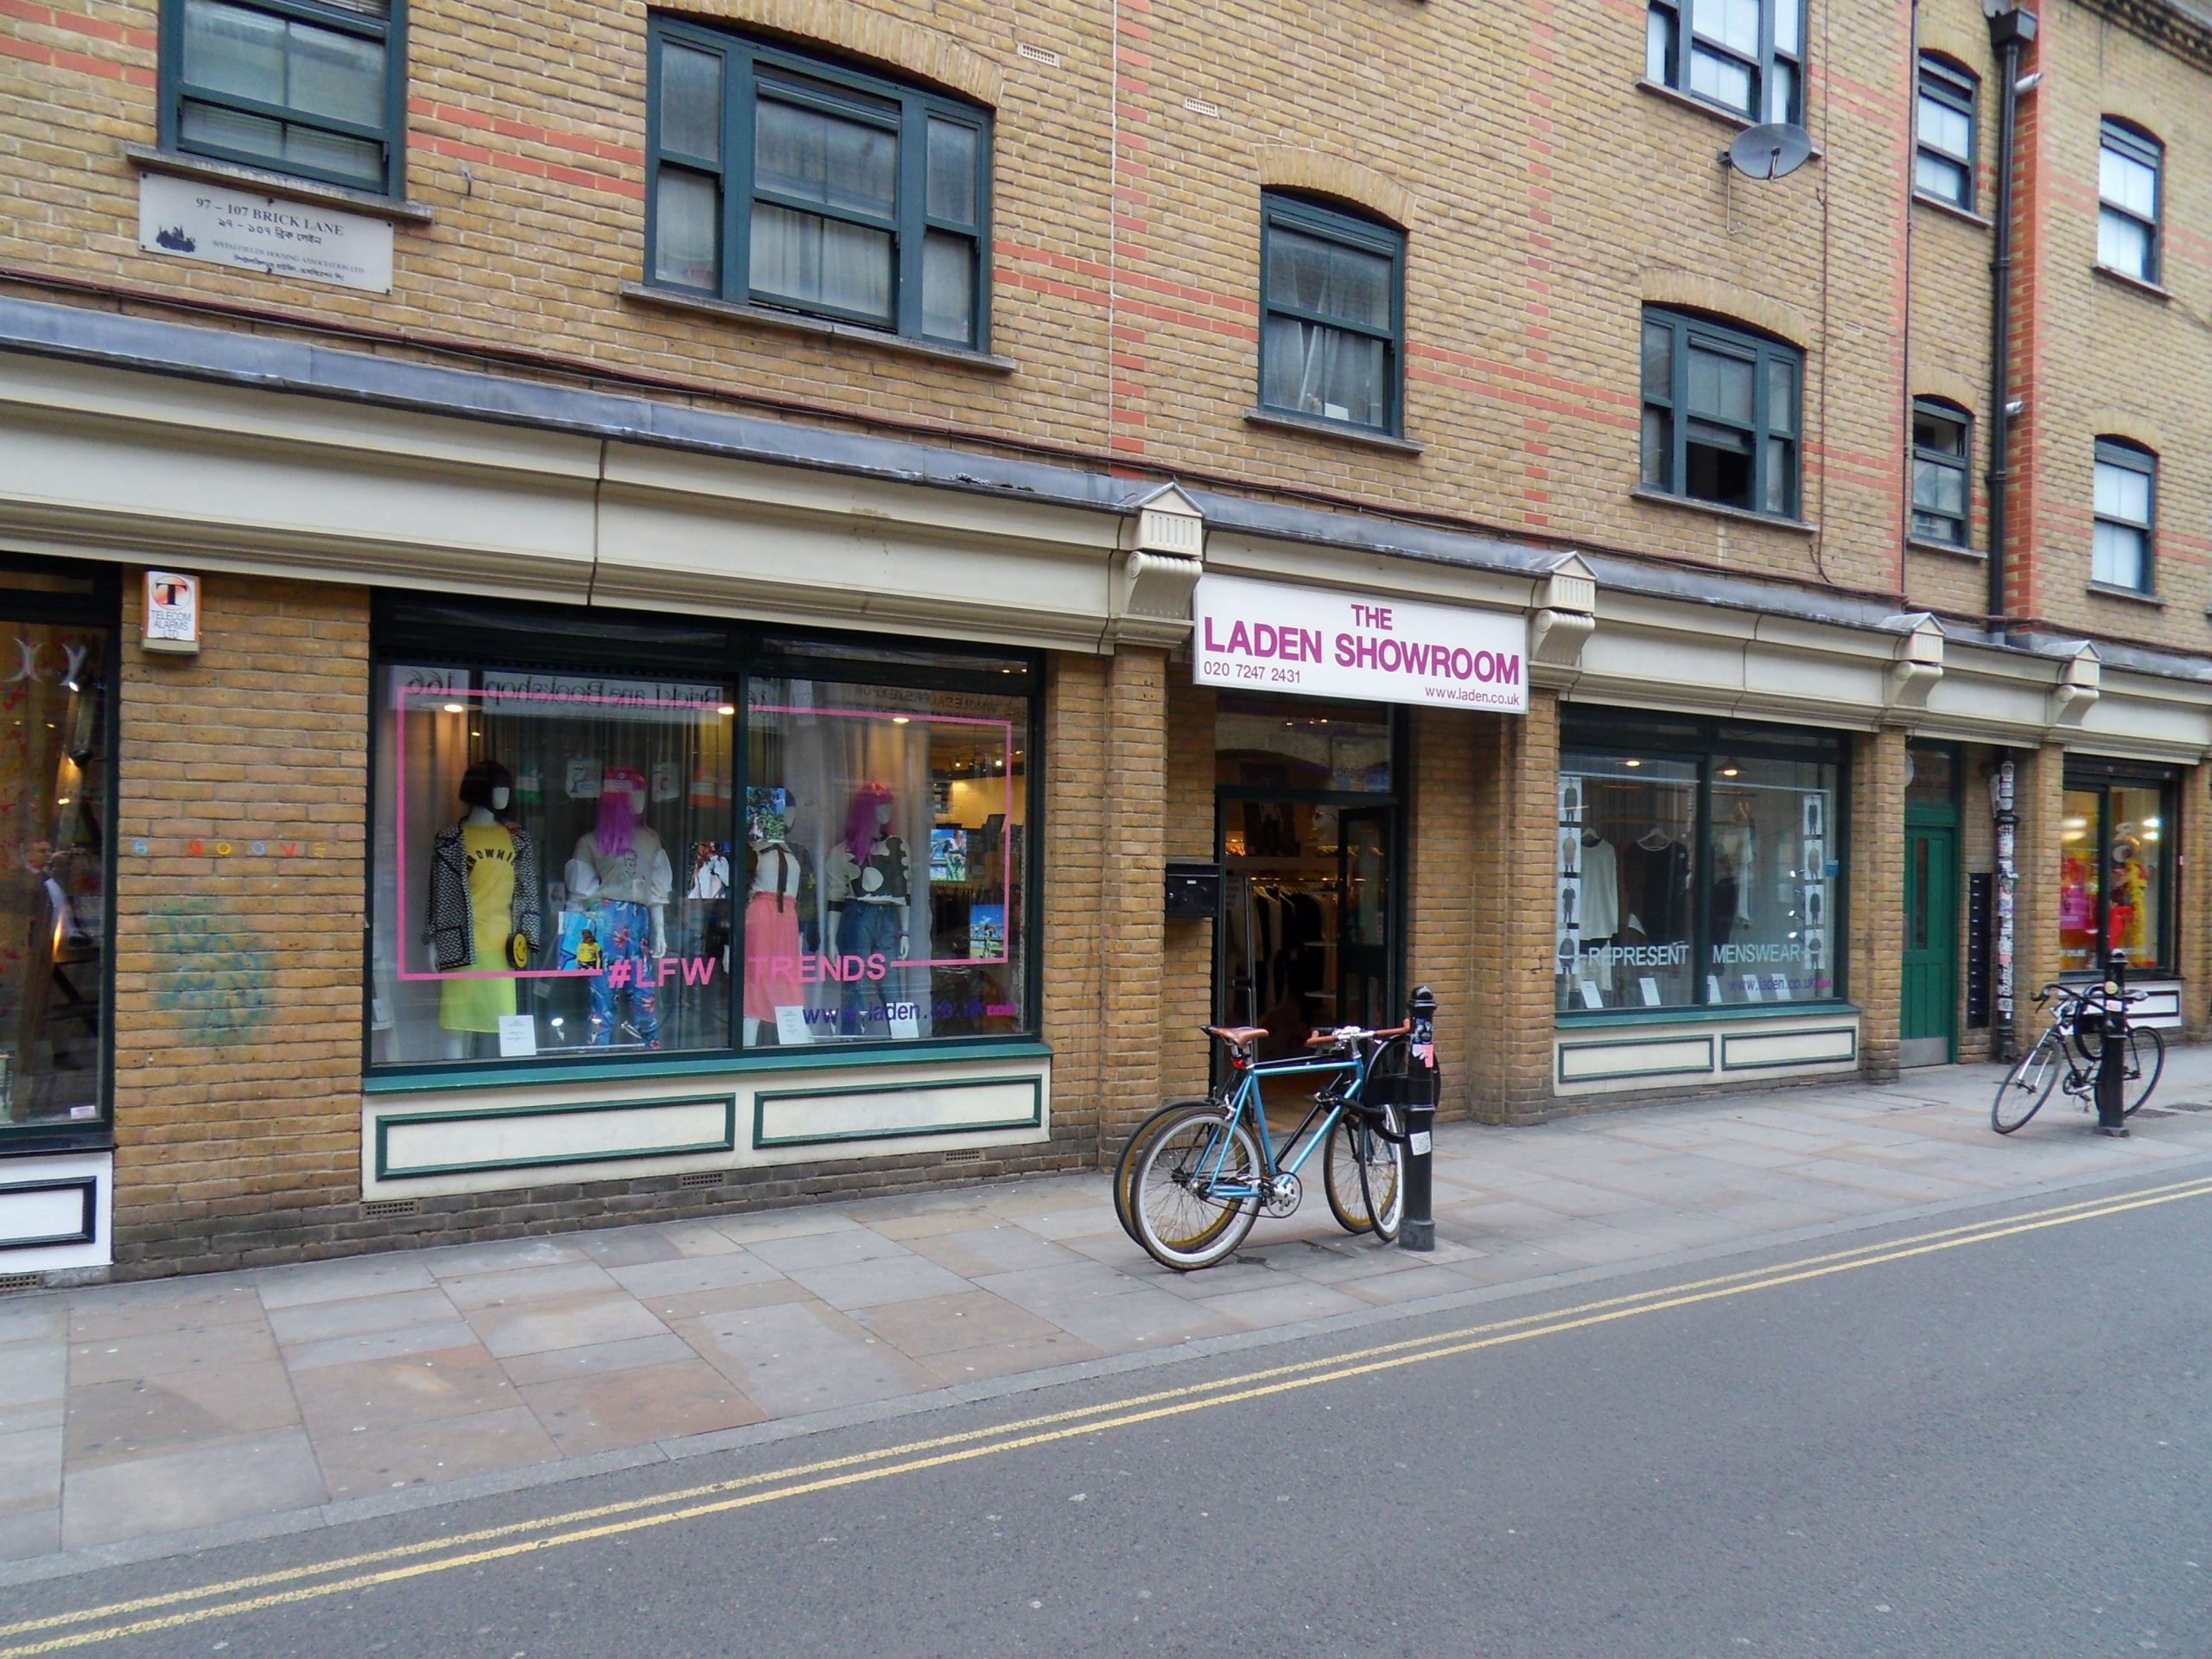 Double Fronted Retail Premises To Let On Brick Lane In